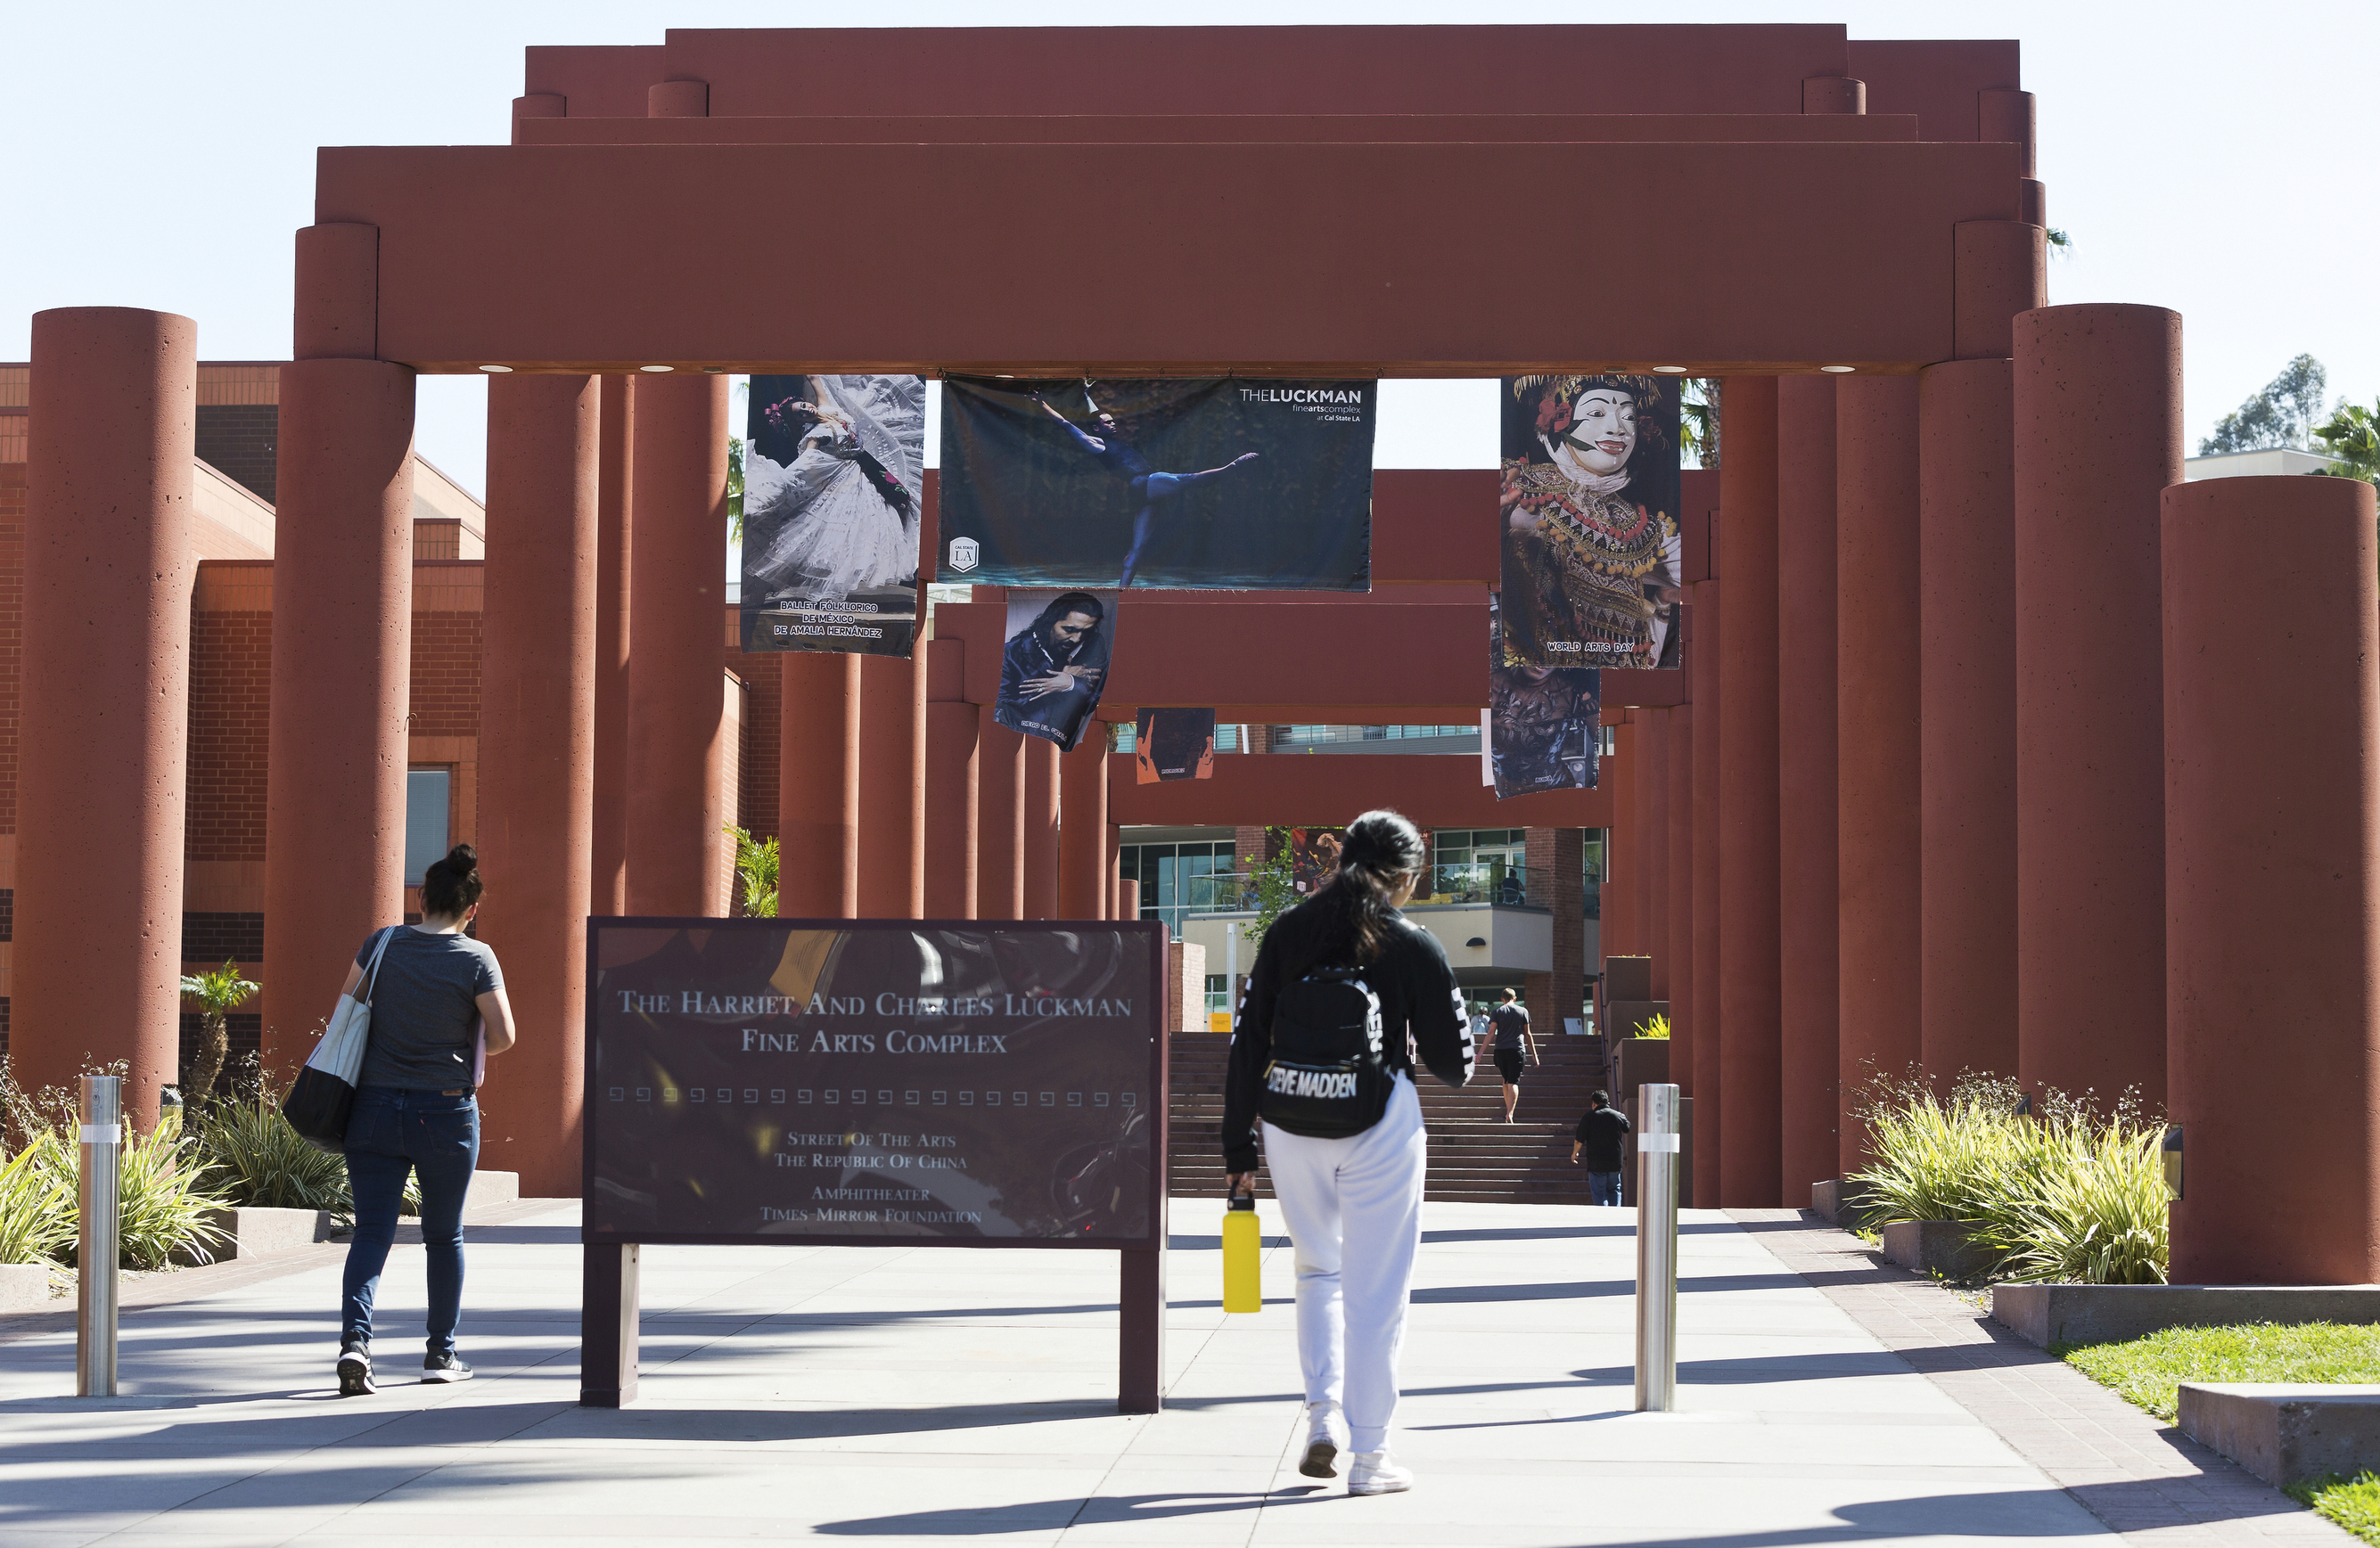 Students walk past the Harriet and Charles Luckman Fine Arts Complex at the The Cal State University, Los Angeles campus Thursday, April 25, 2019. Hundreds of students and staff at two Los Angeles universities, including Cal State University, have been placed under quarantine because they may have been exposed to measles and either have not been vaccinated or cannot verify that they are immune, officials said Thursday. (AP Photo/Damian Dovarganes)